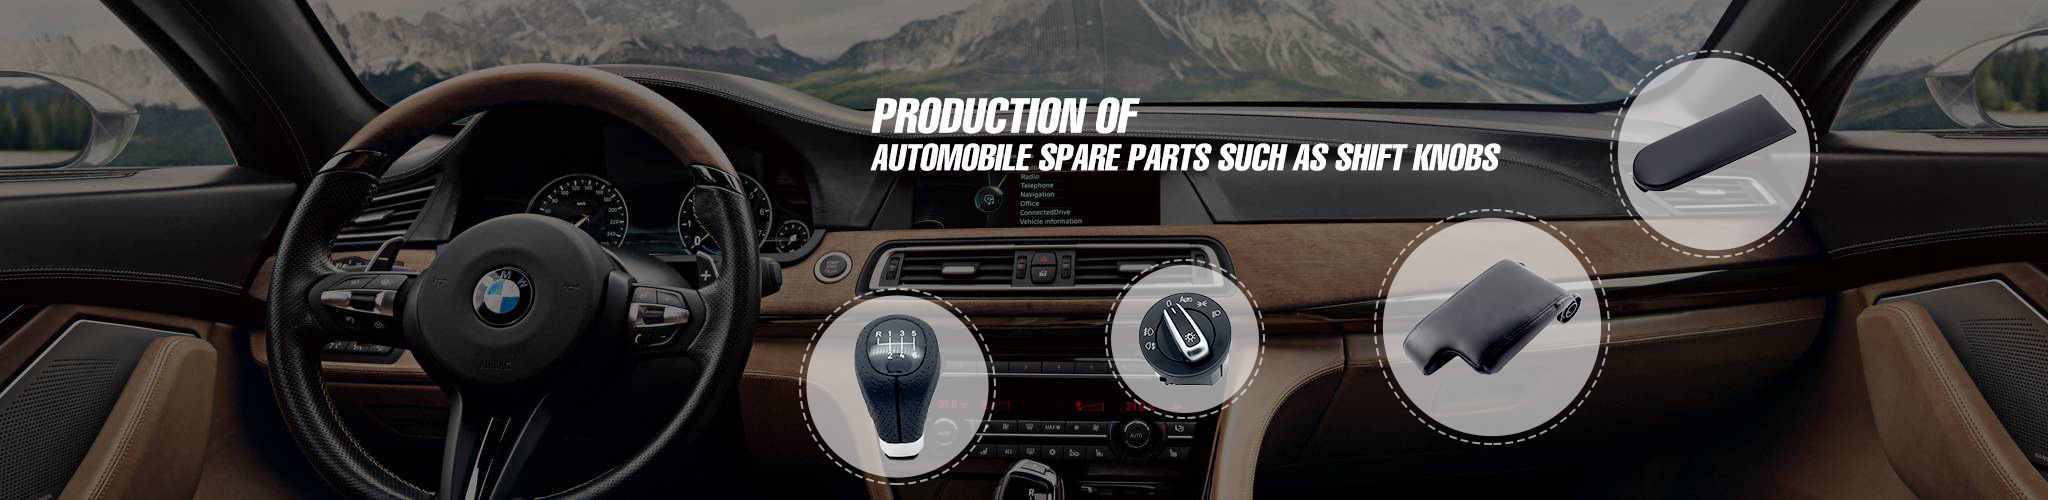 Production of automobile spare parts such as shift knobs